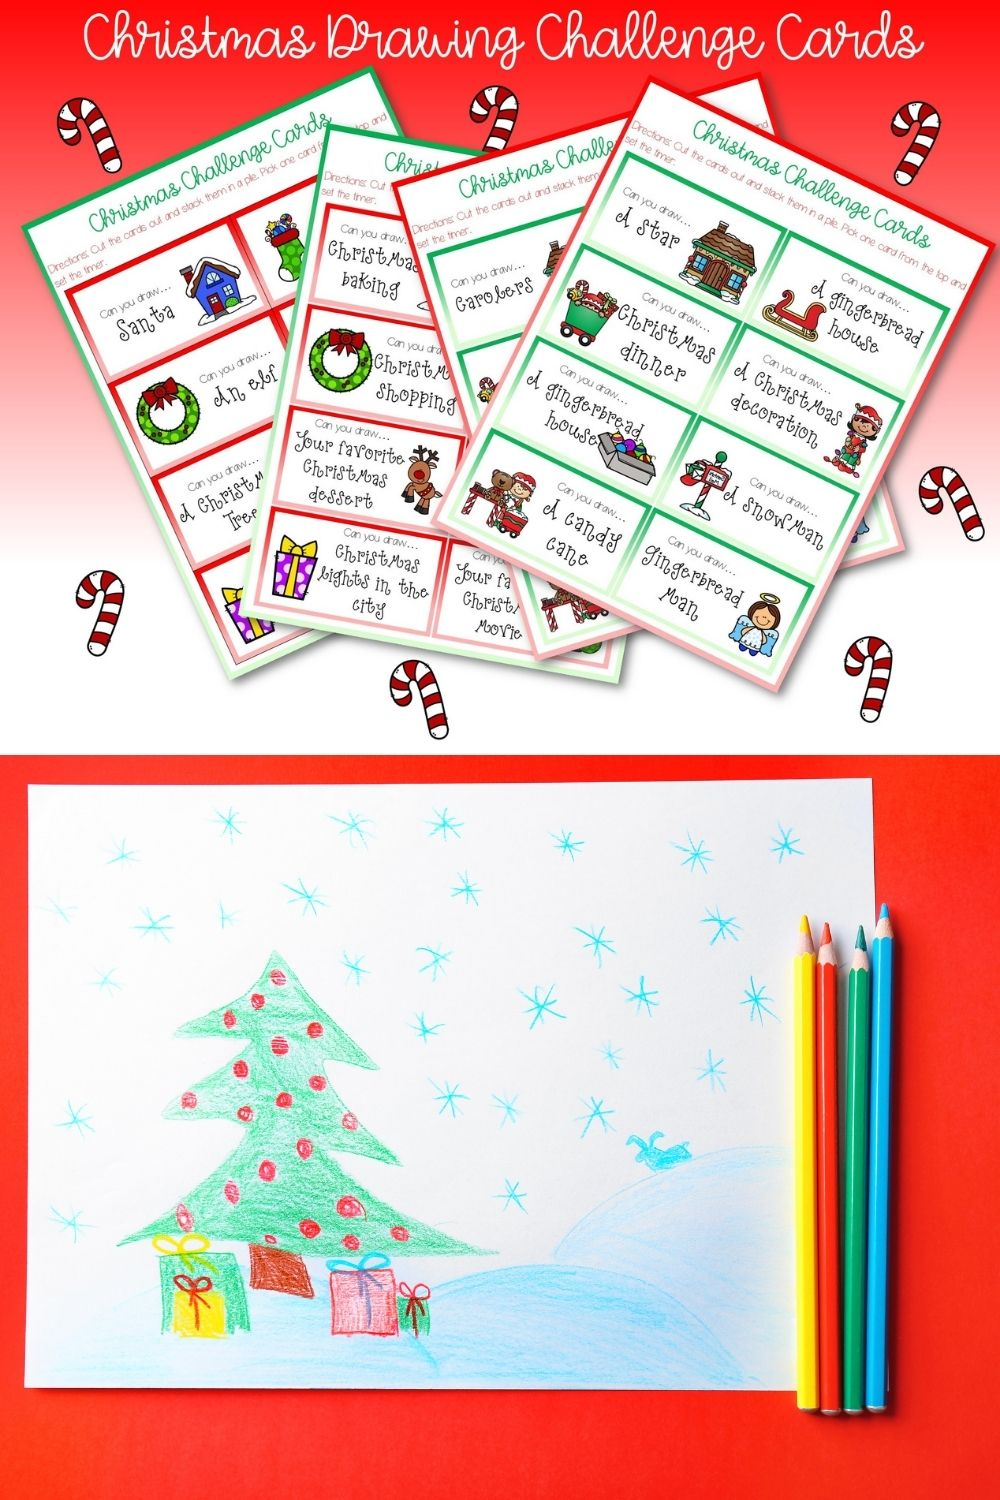 Christmas Drawing Challenge Cards